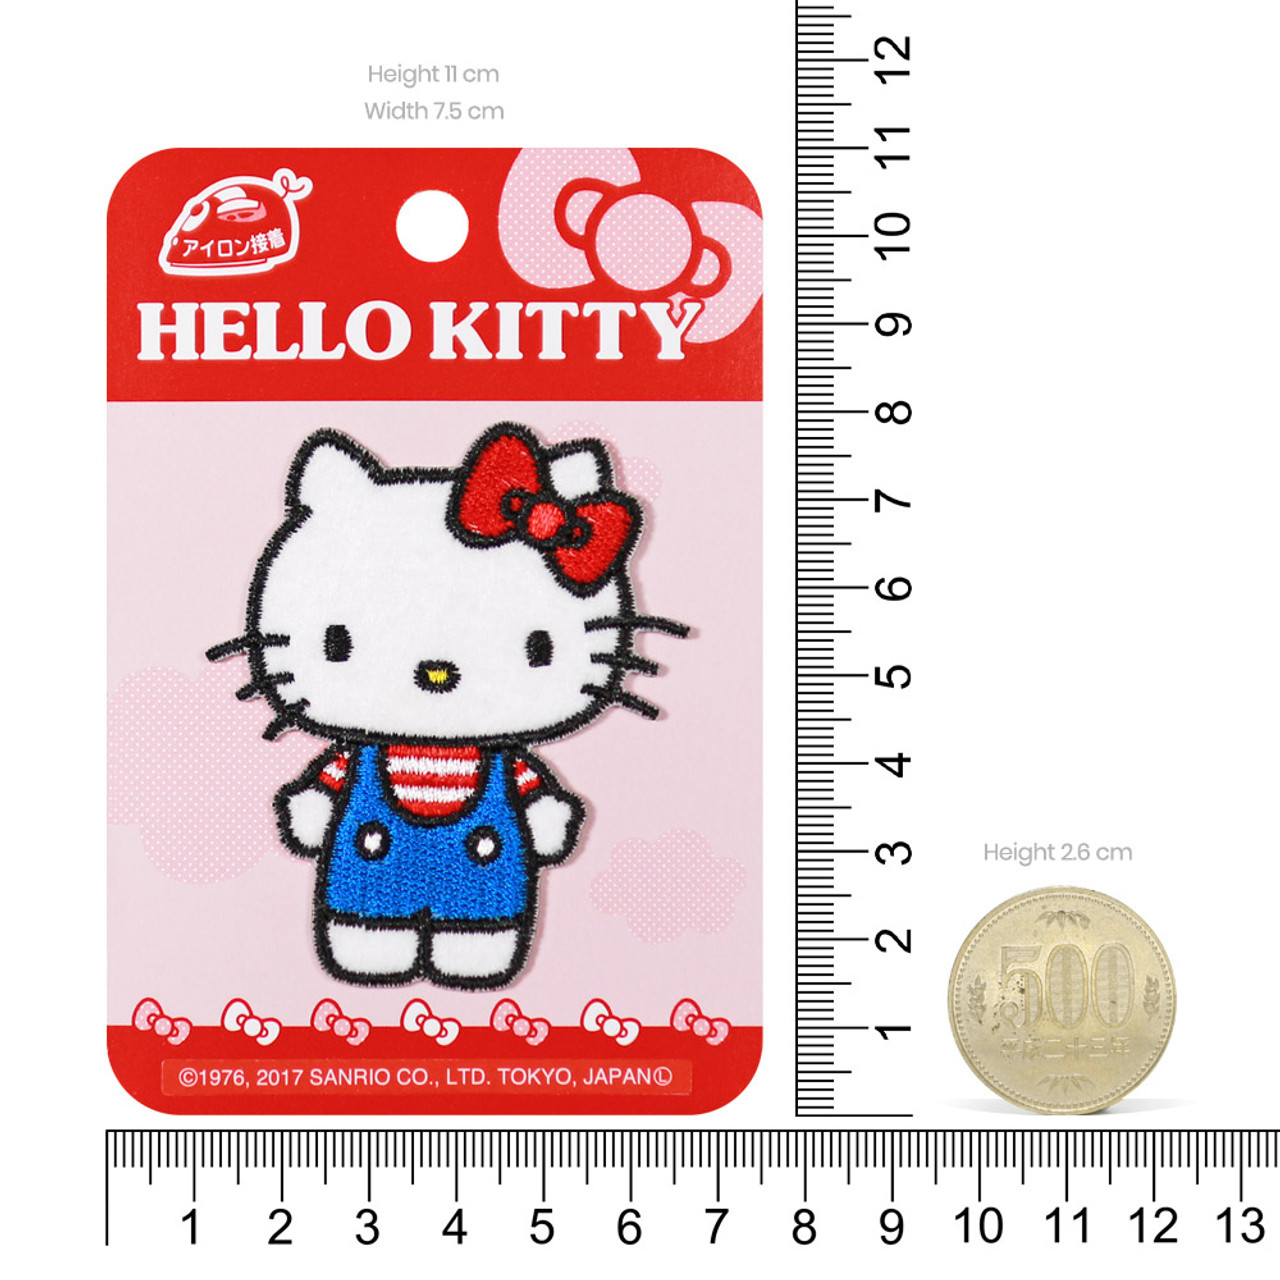 Sanrio Hello Kitty Iron On Patch BC13 ( Proportion )